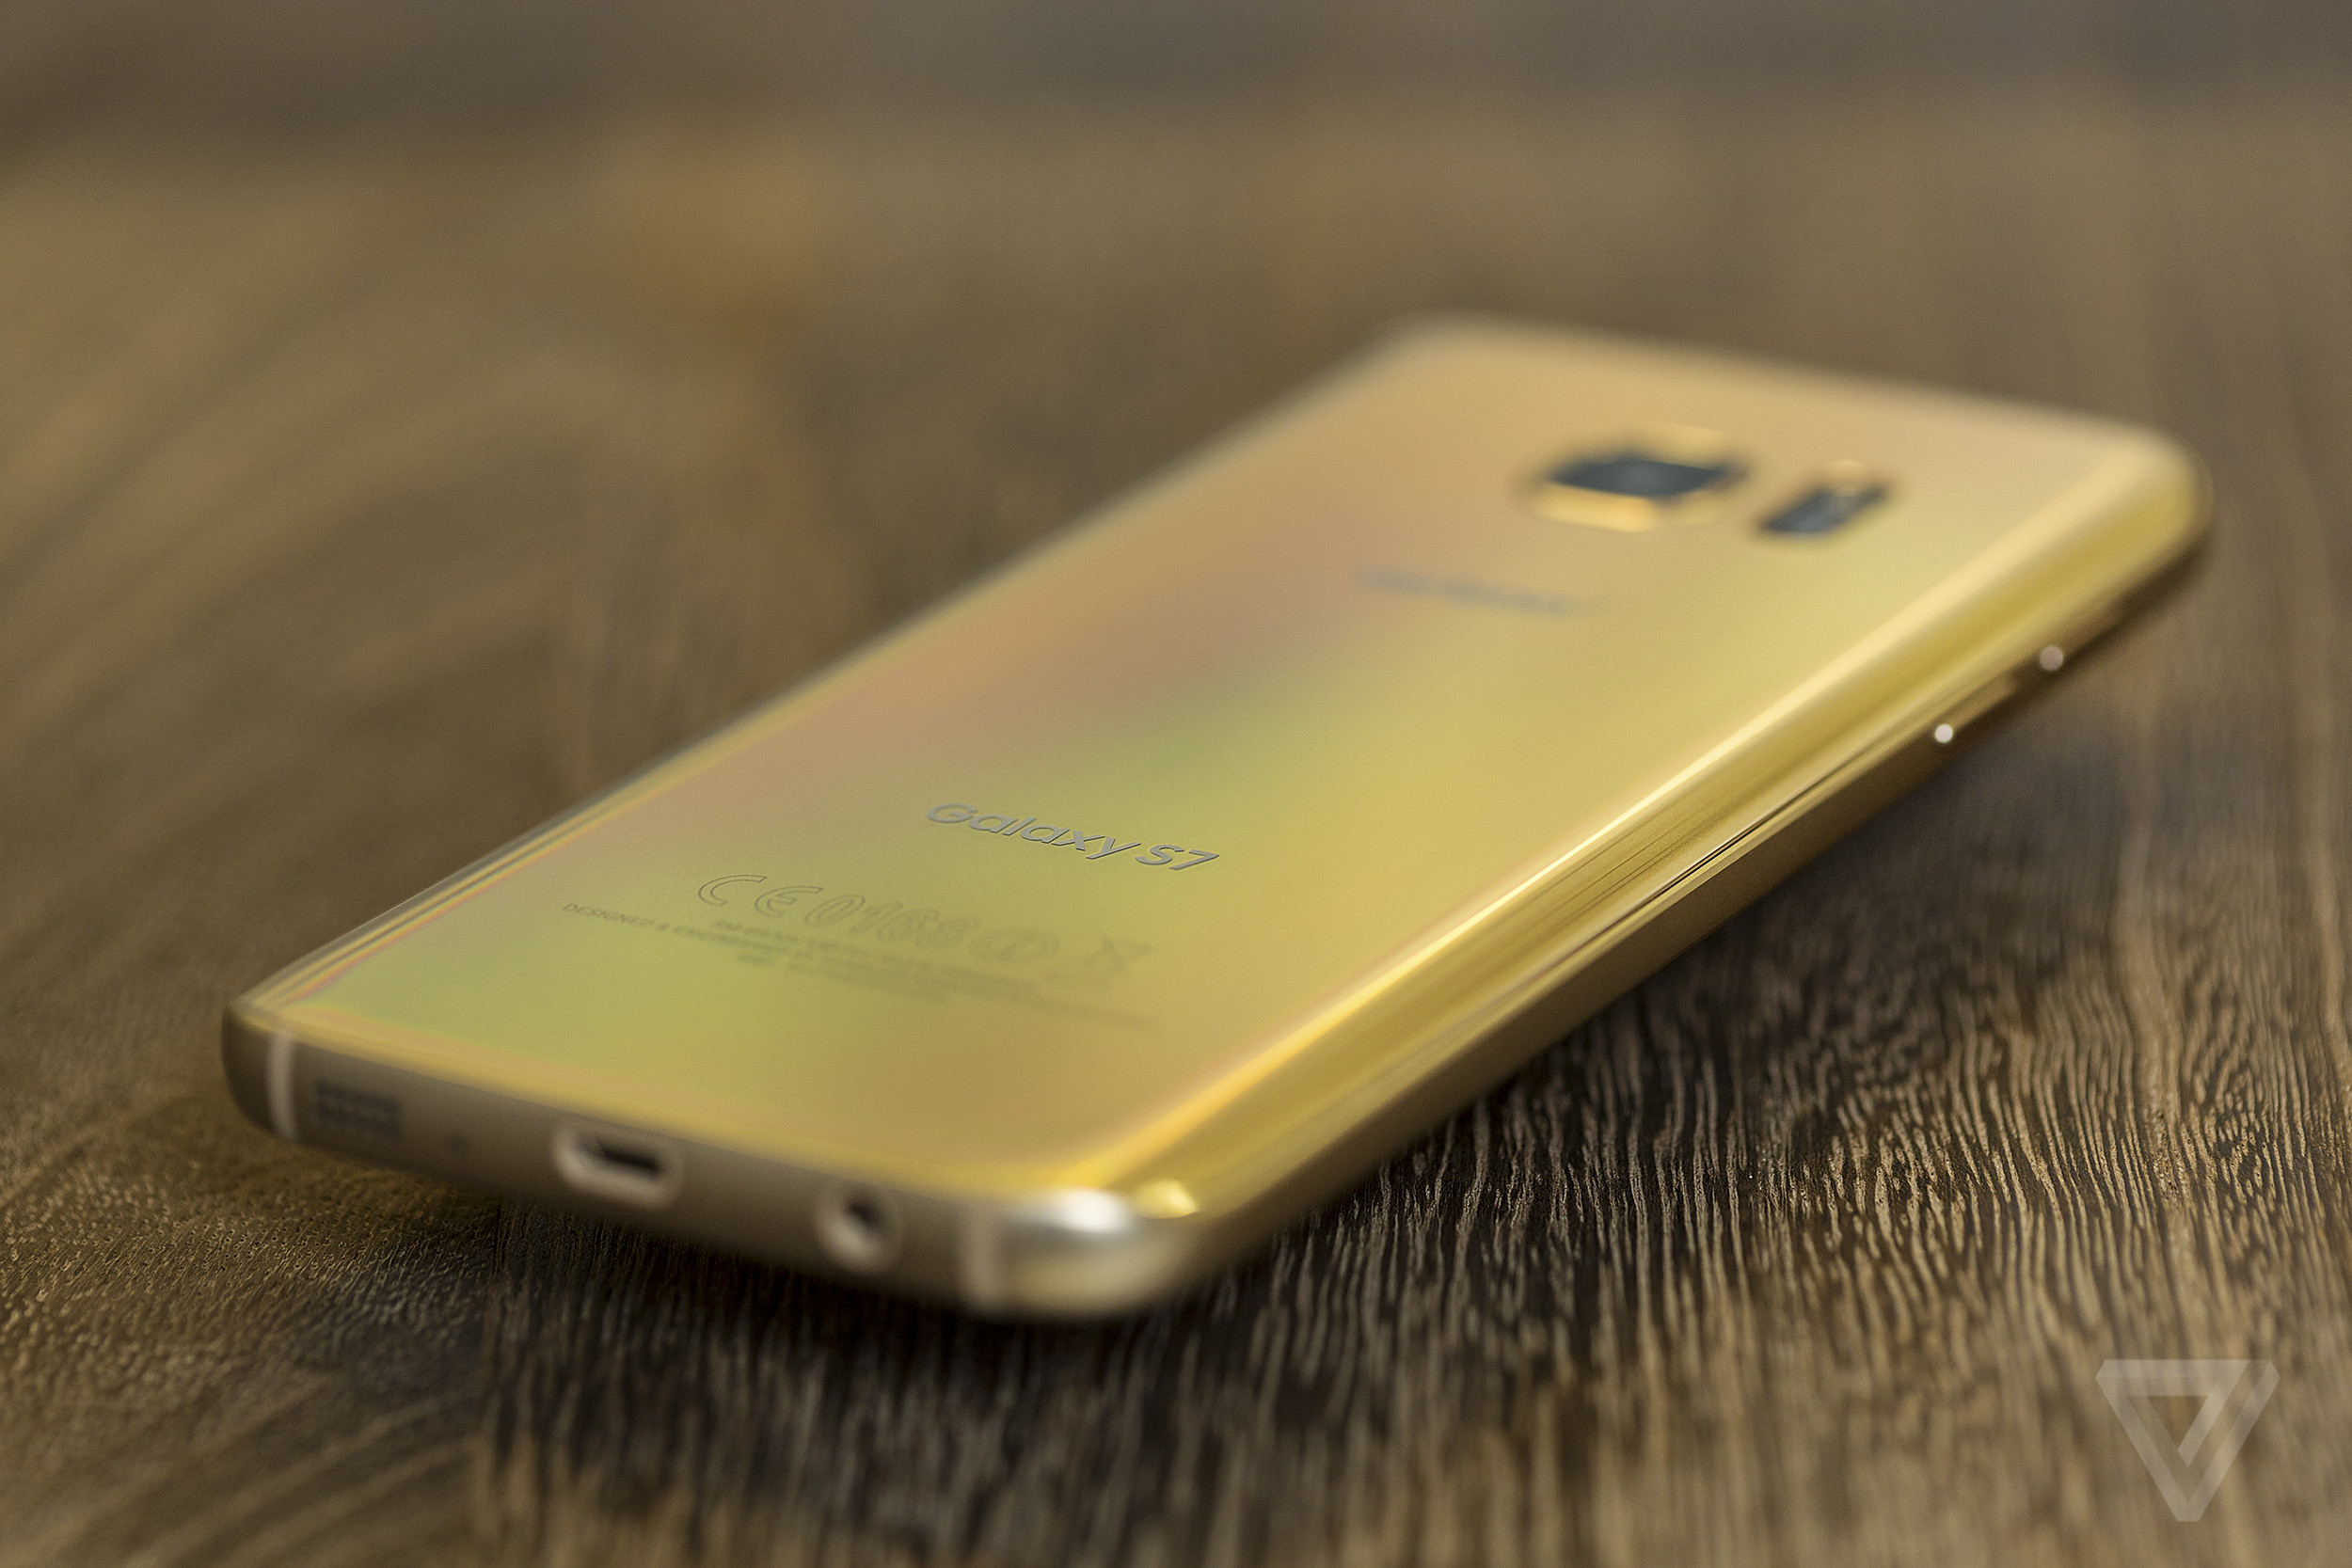 Samsung Galaxy S7 And Edge In Pictures